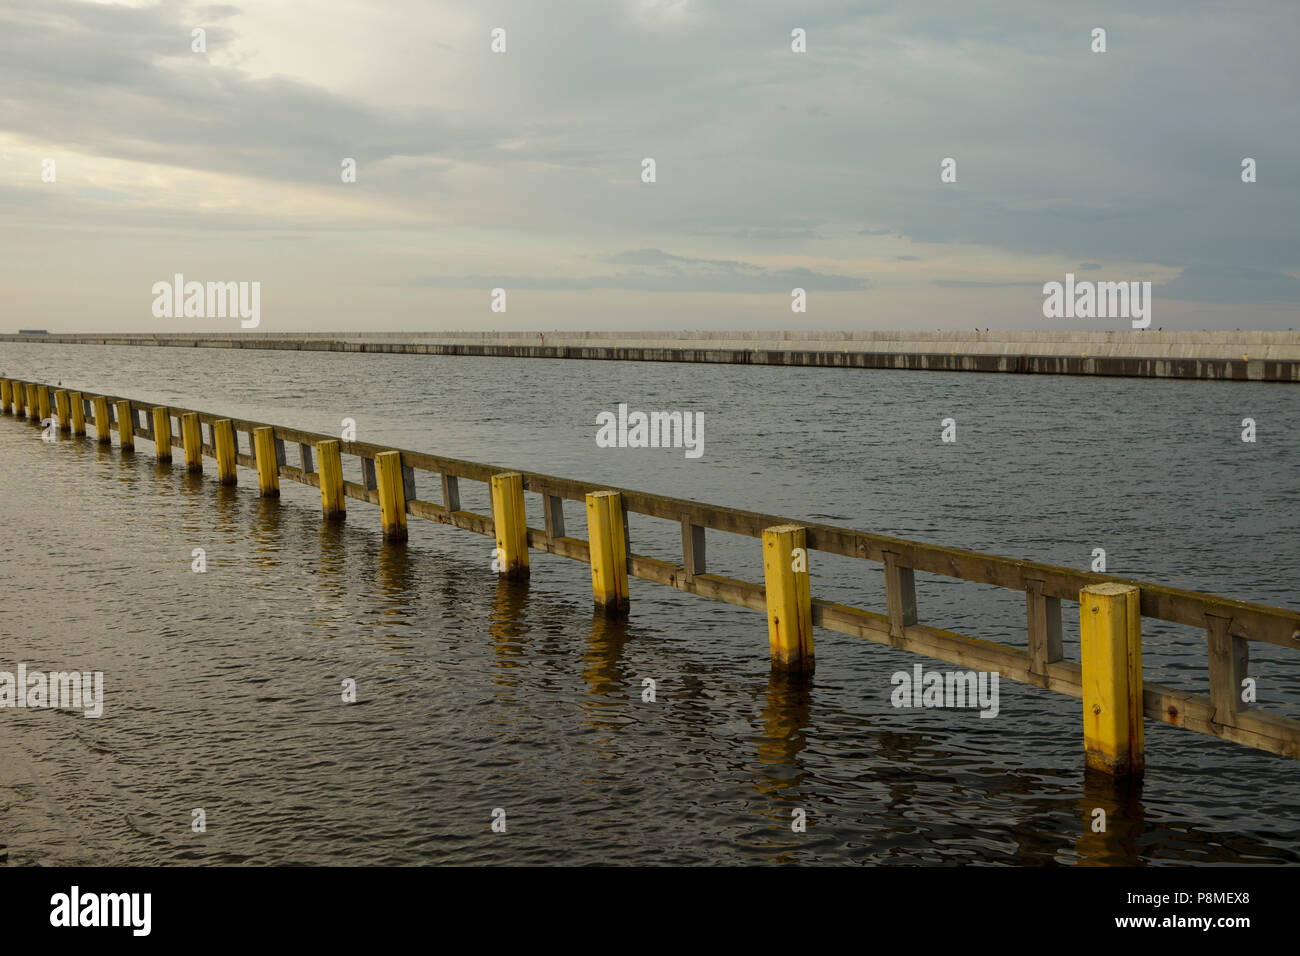 yellow pales in harbour, wide angle, cloudy, summer evening Stock Photo